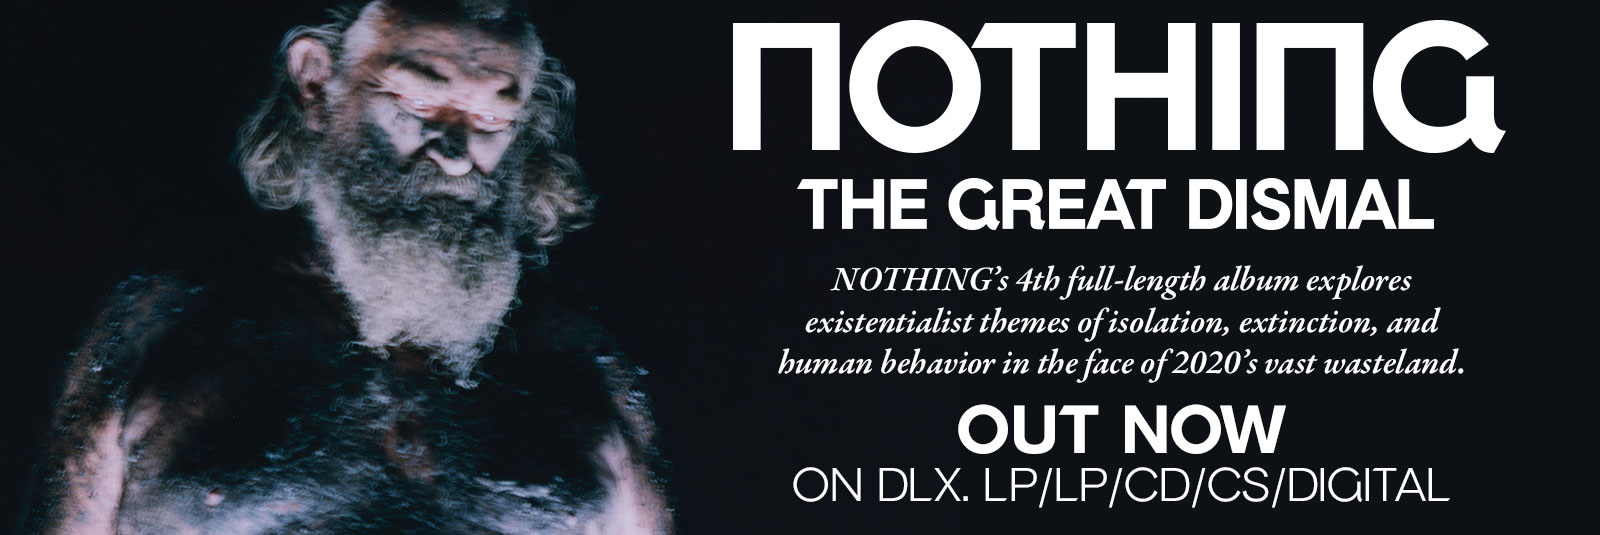 nothing-the-great-dismal-relapse-records-shoegaze-indie-alternative-rock-out-now